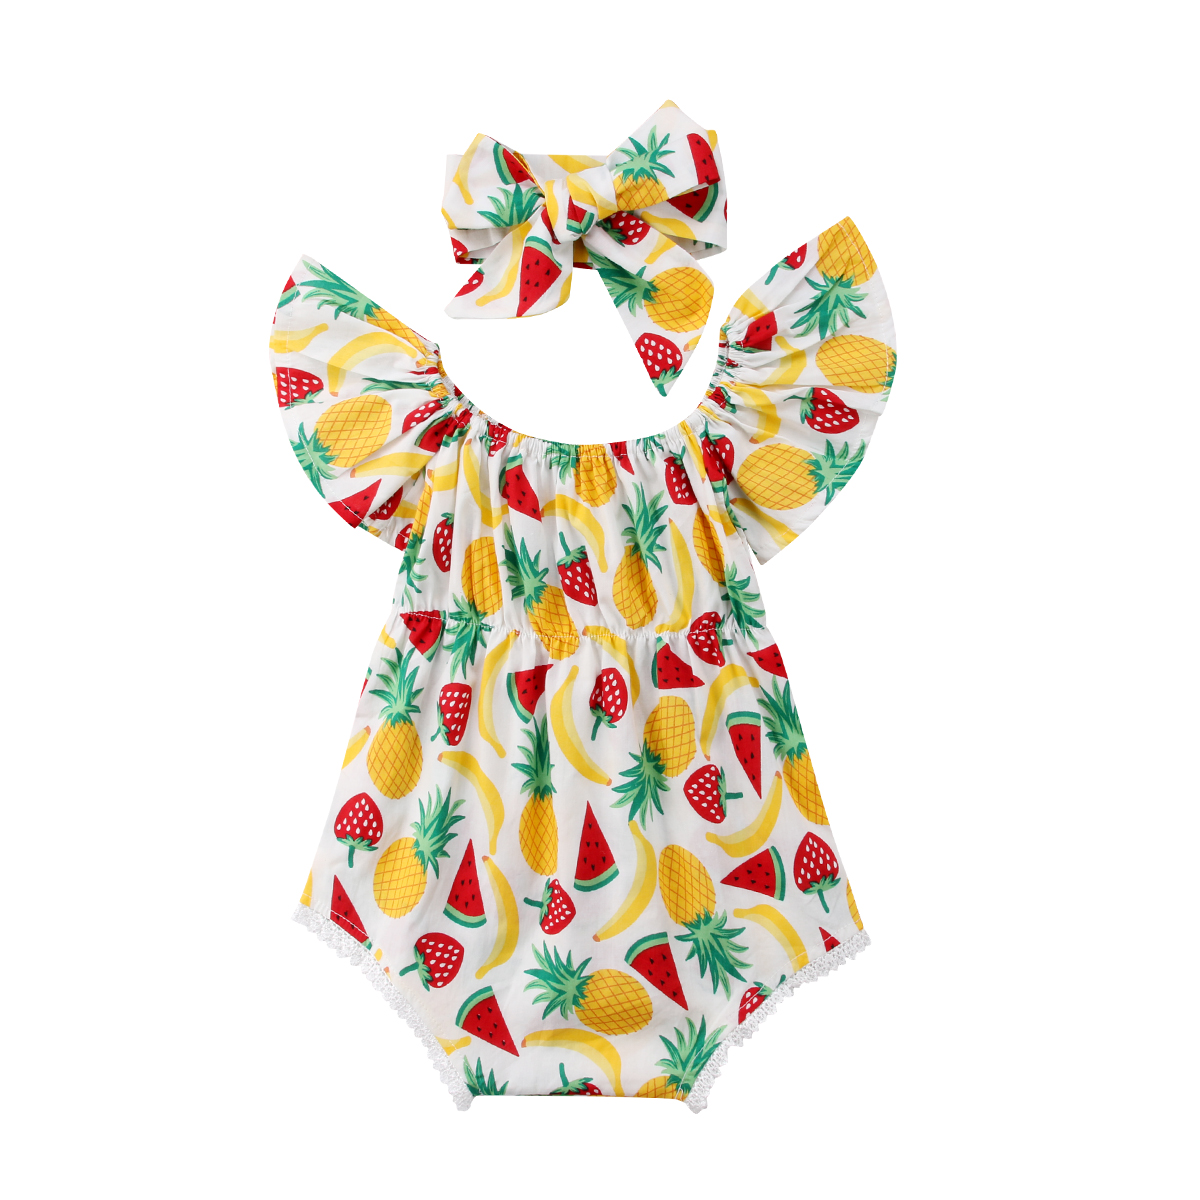 Infant Toddler Baby Kids Print Girls Romper Jumpsuit Playsuit Outfit Pineapple